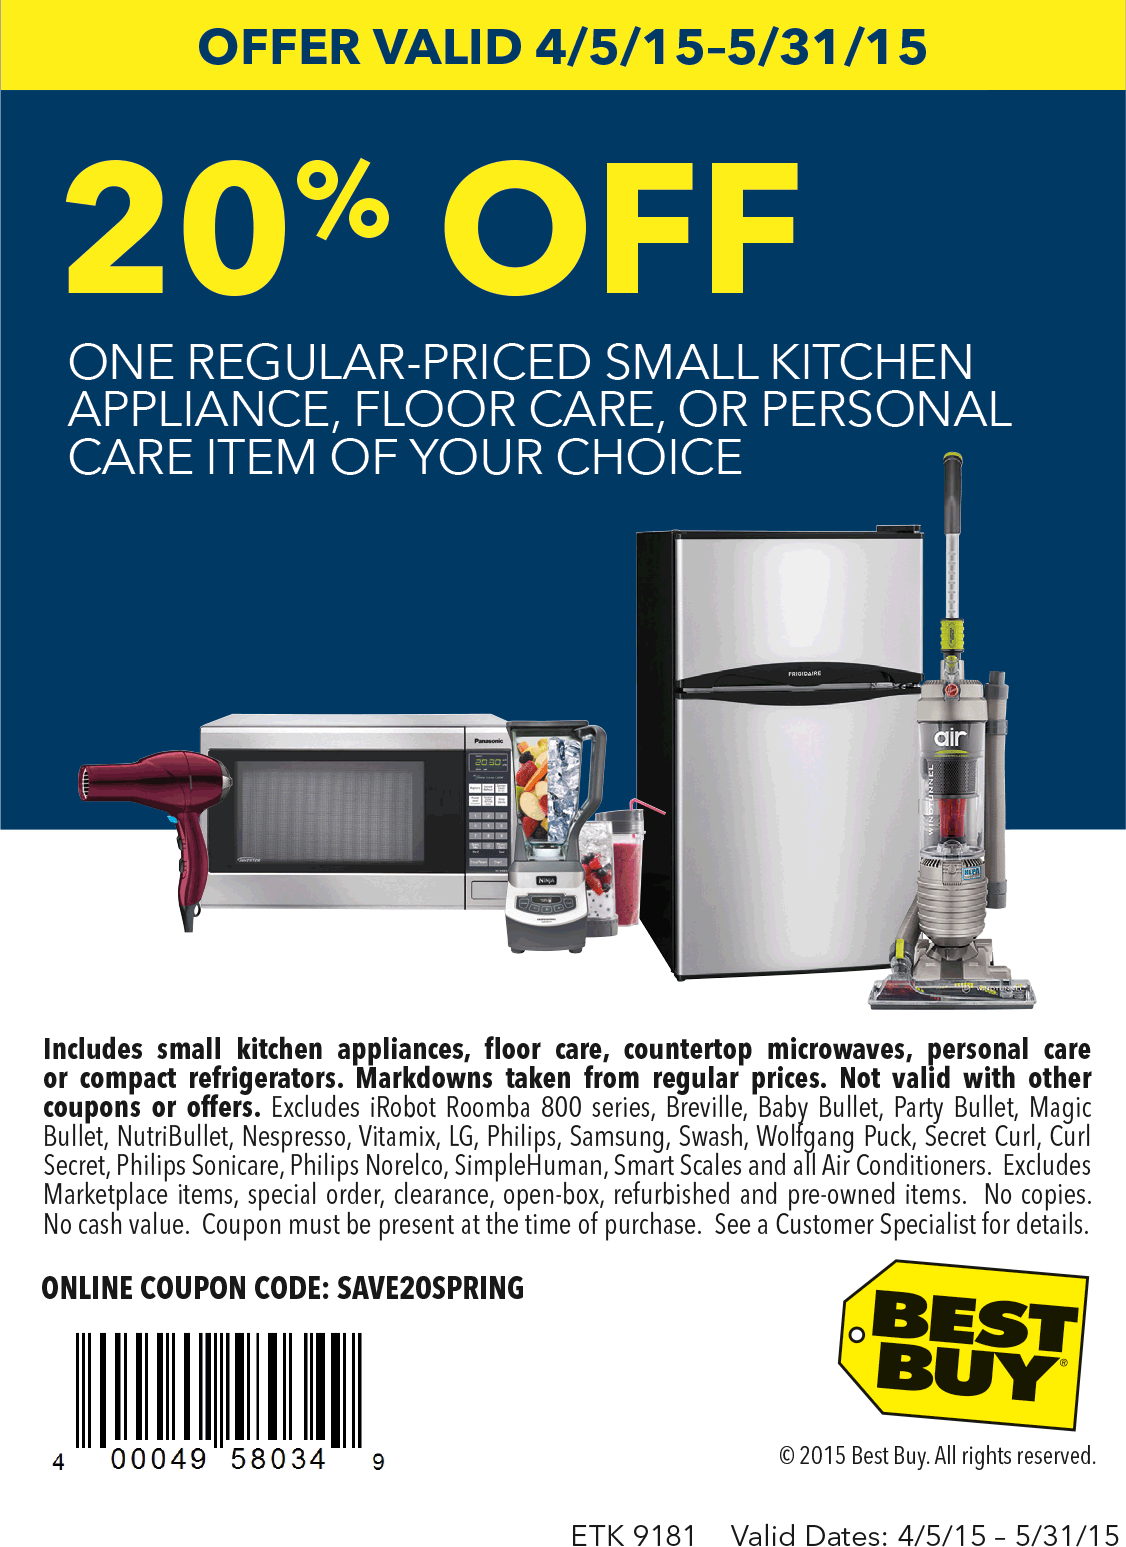 Best Buy Coupon June 2017 20% off a single appliance at Best Buy, or online via promo code SAVE20SPRING